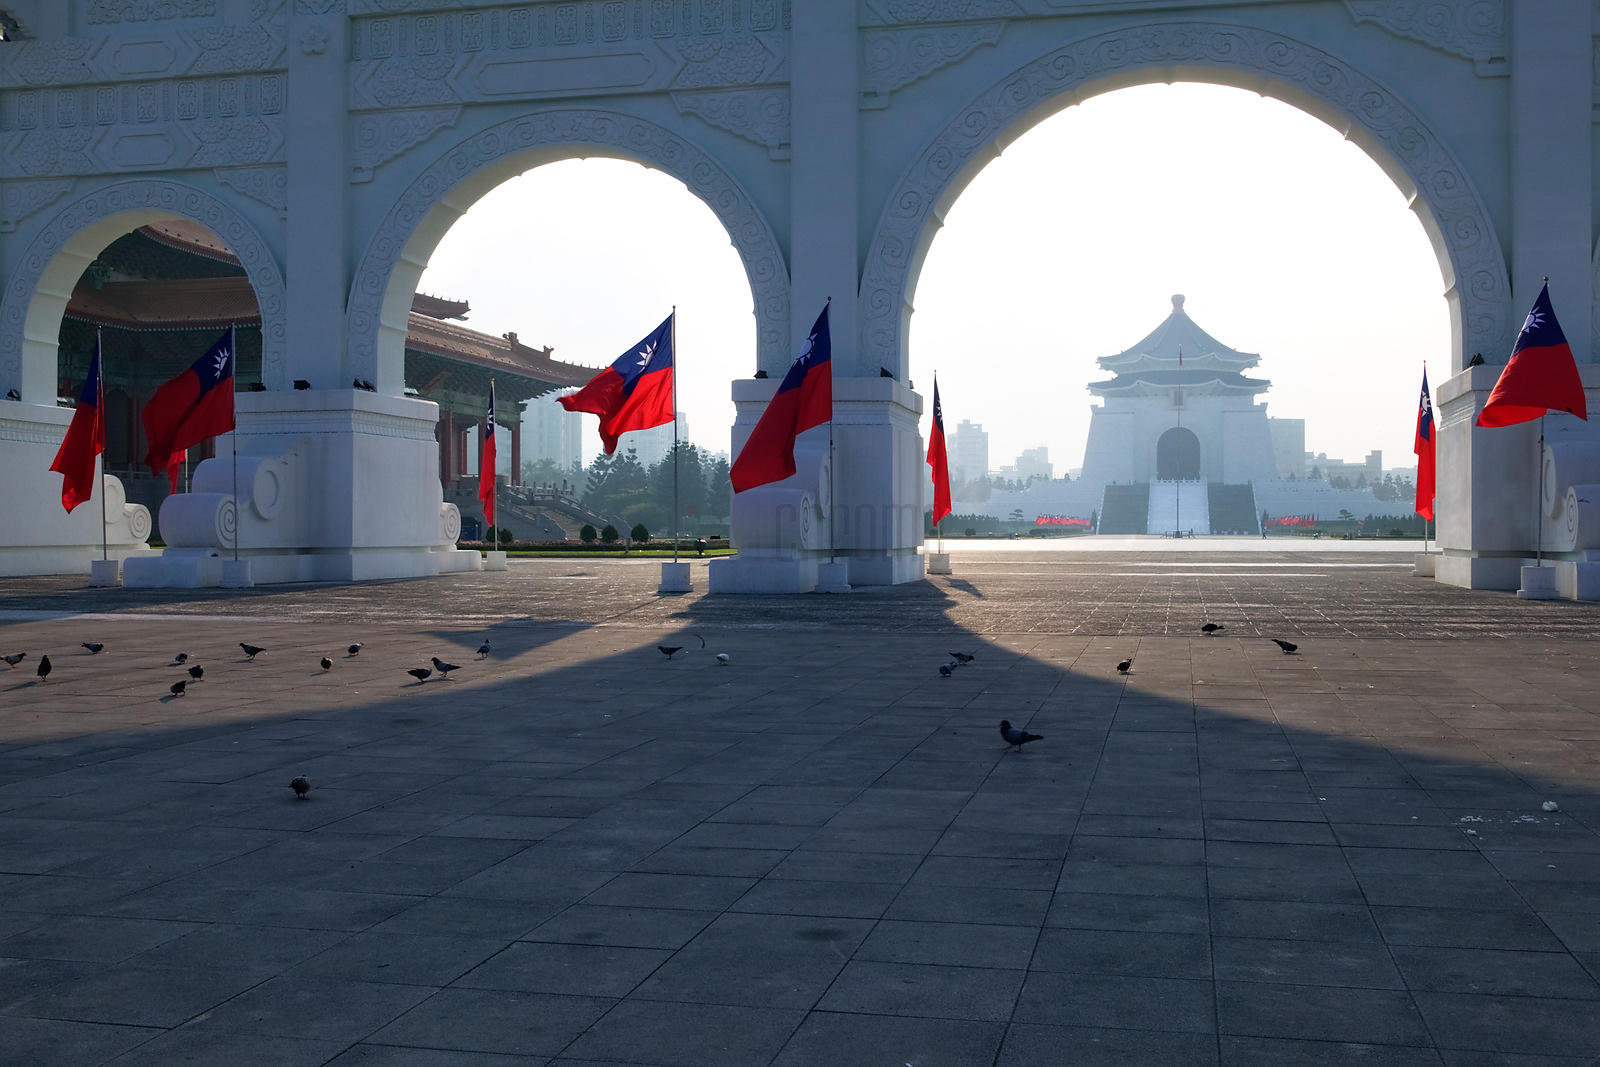 Gateway to Chiang Kai-shek Memorial Hall